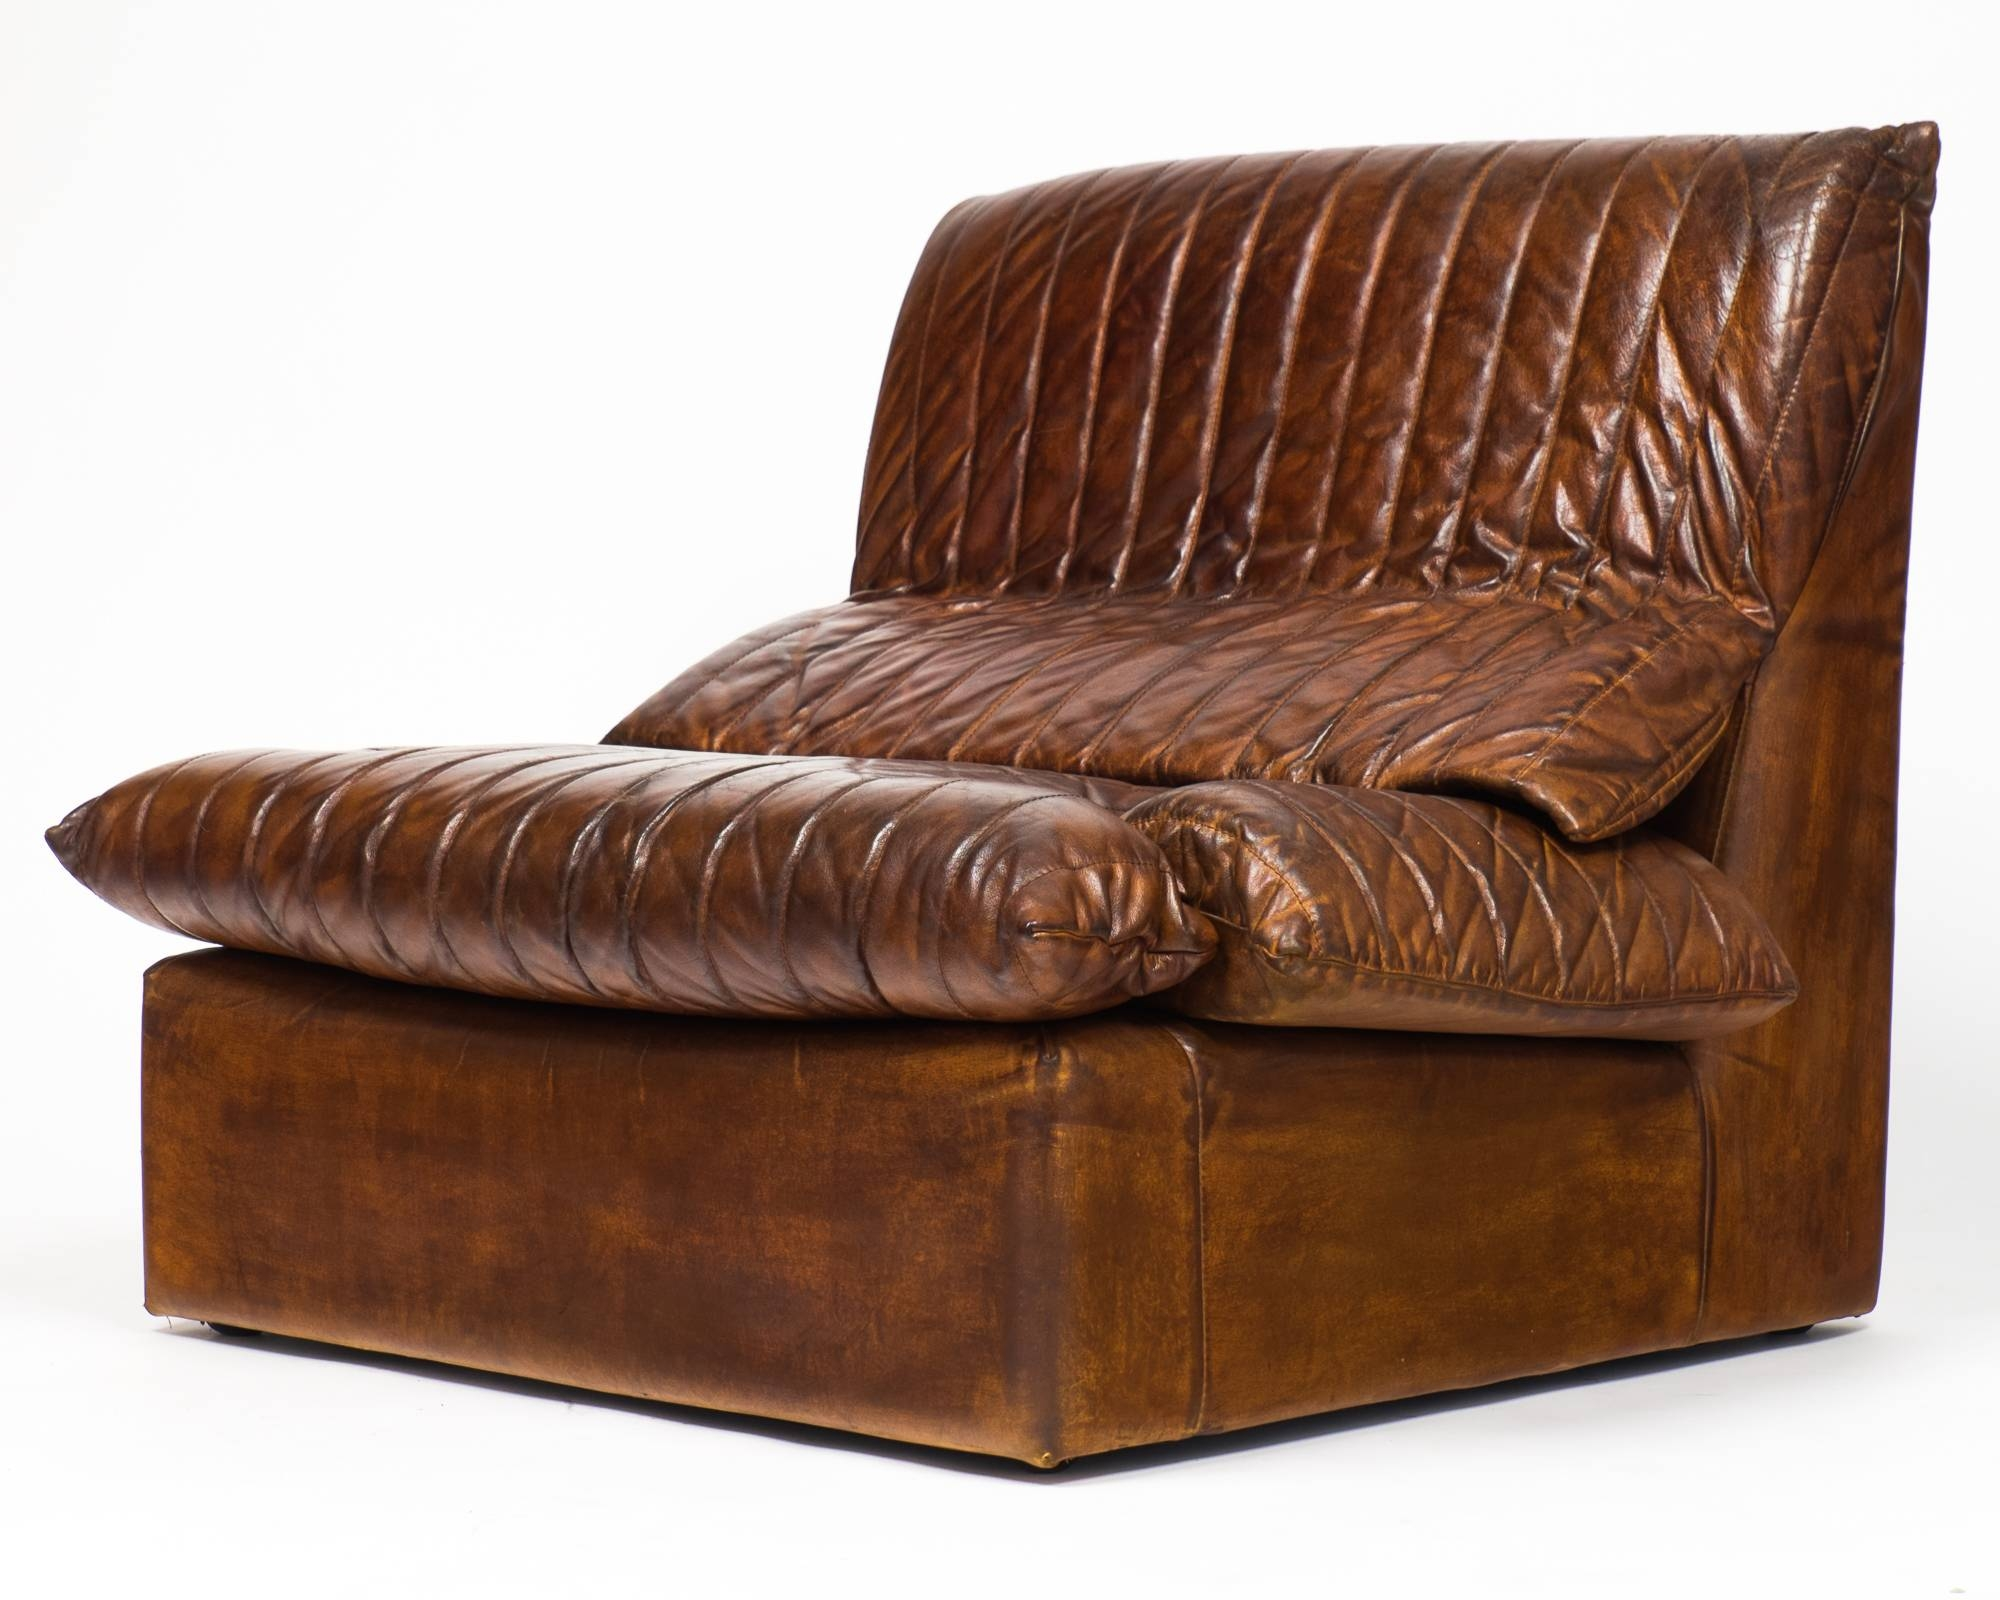 Vintage Roche Bobois Leather Armchairs - Jean Marc Fray throughout Vintage Leather Armchairs (Image 27 of 30)